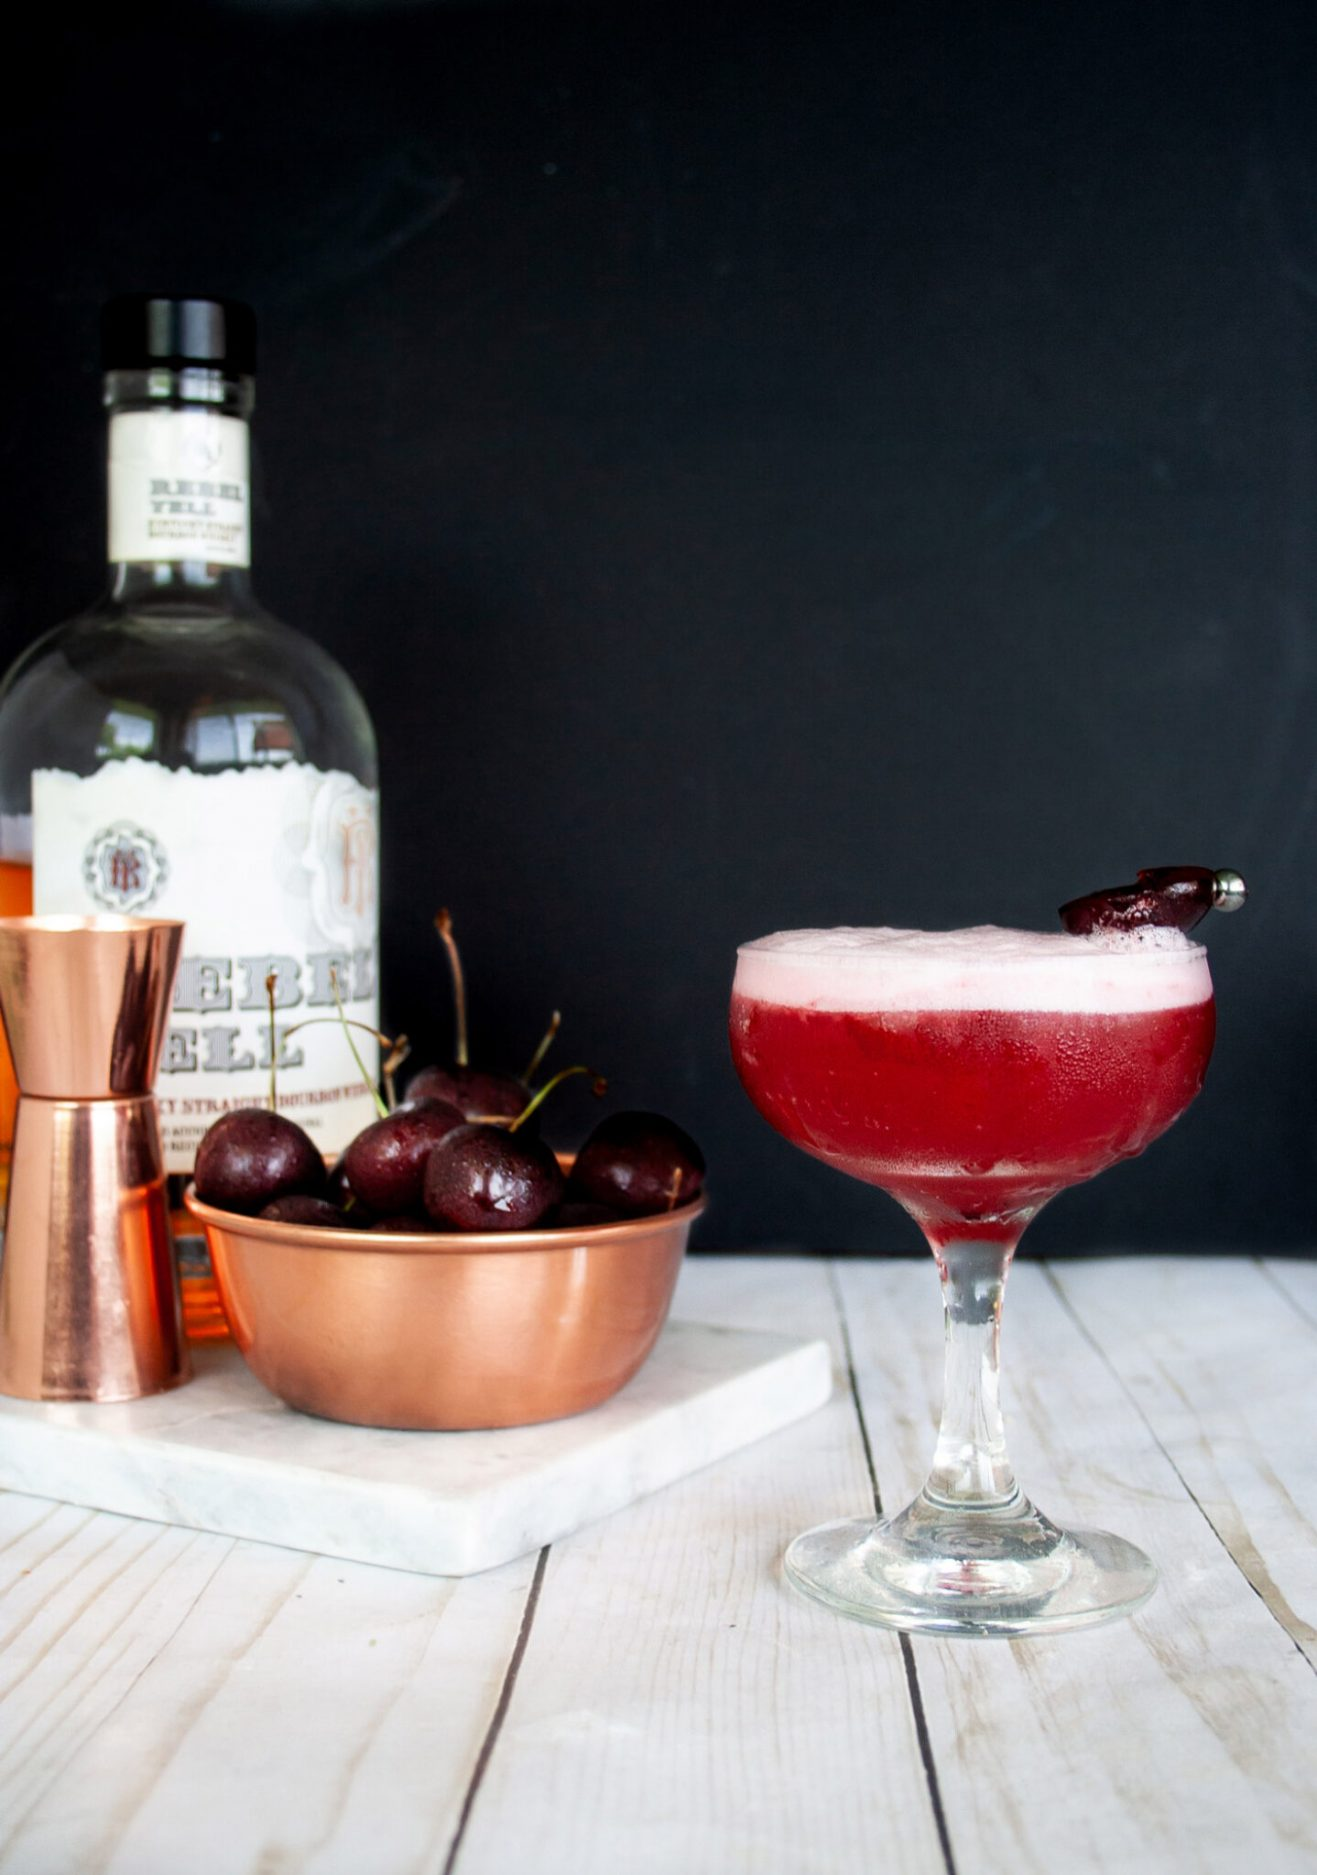 It's cherry season which means it's cherry cocktail time! Grab this Cherry Bourbon Sour recipe made with fresh cherries for a tart and slightly sweet spin on the classic Whiskey Sour. Pink cocktail and bourbon cocktail. Elle Talk | #cocktail #cocktailrecipe #drinkrecipe #drinks #recipeoftheday #cherries #easyrecipe #bourbon